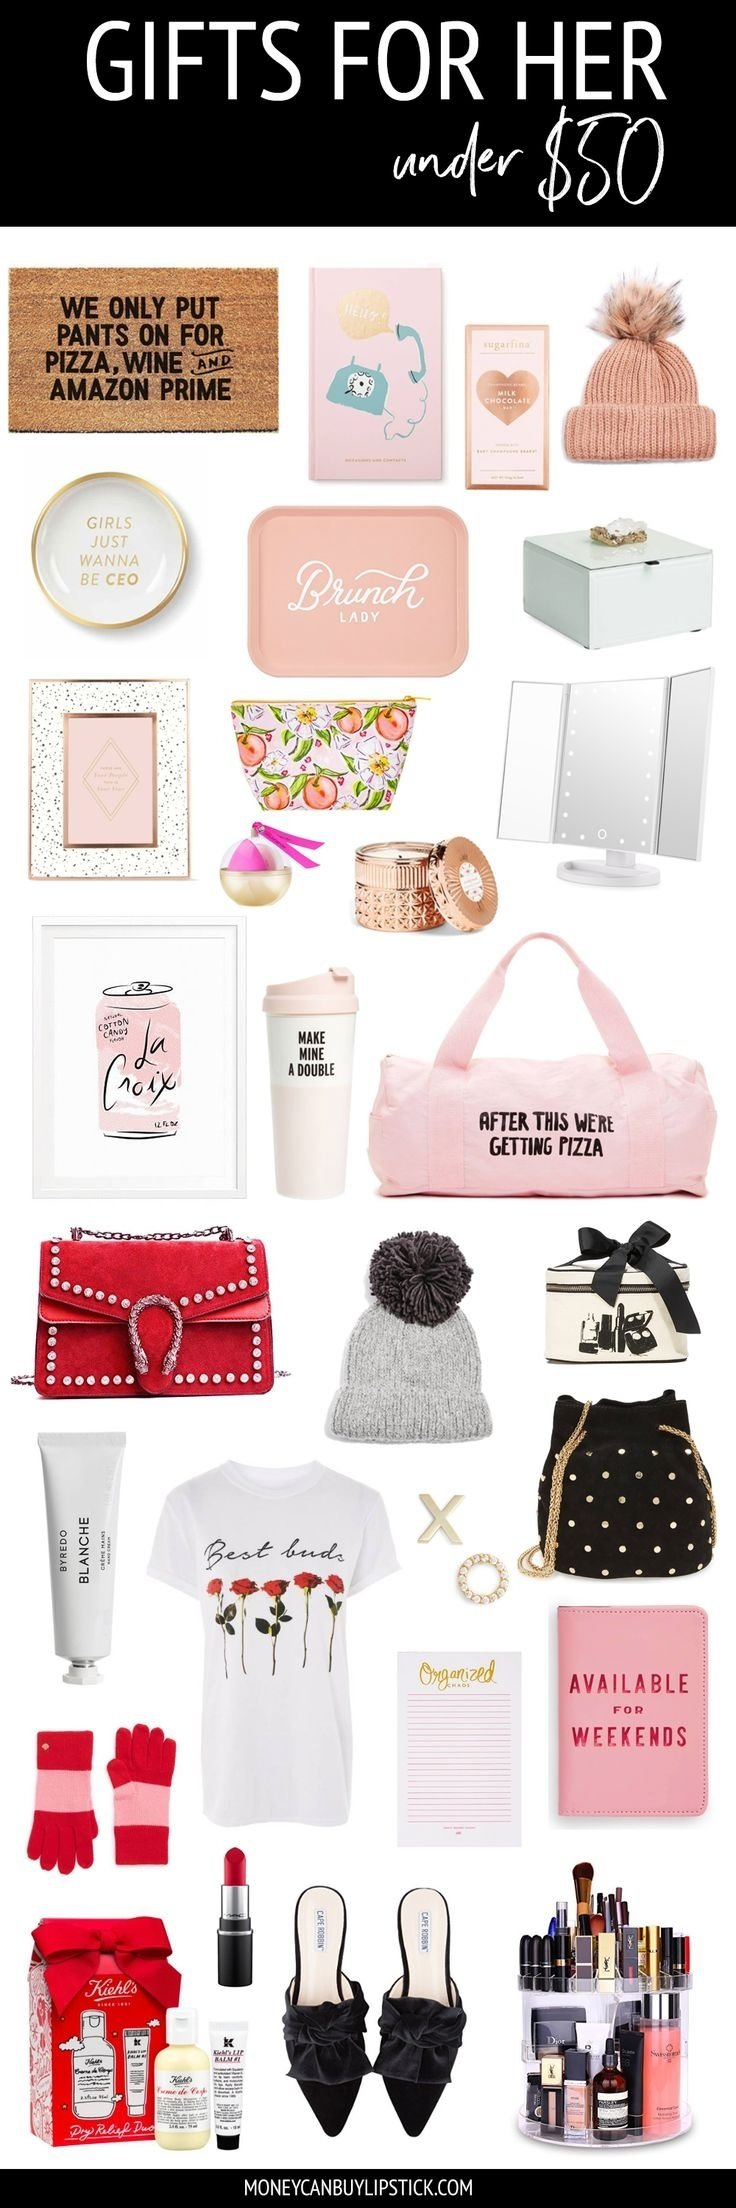 10 Unique Gift Ideas For Girl Best Friend gifts for her under 50 christmas gifts girly and 50th 2020